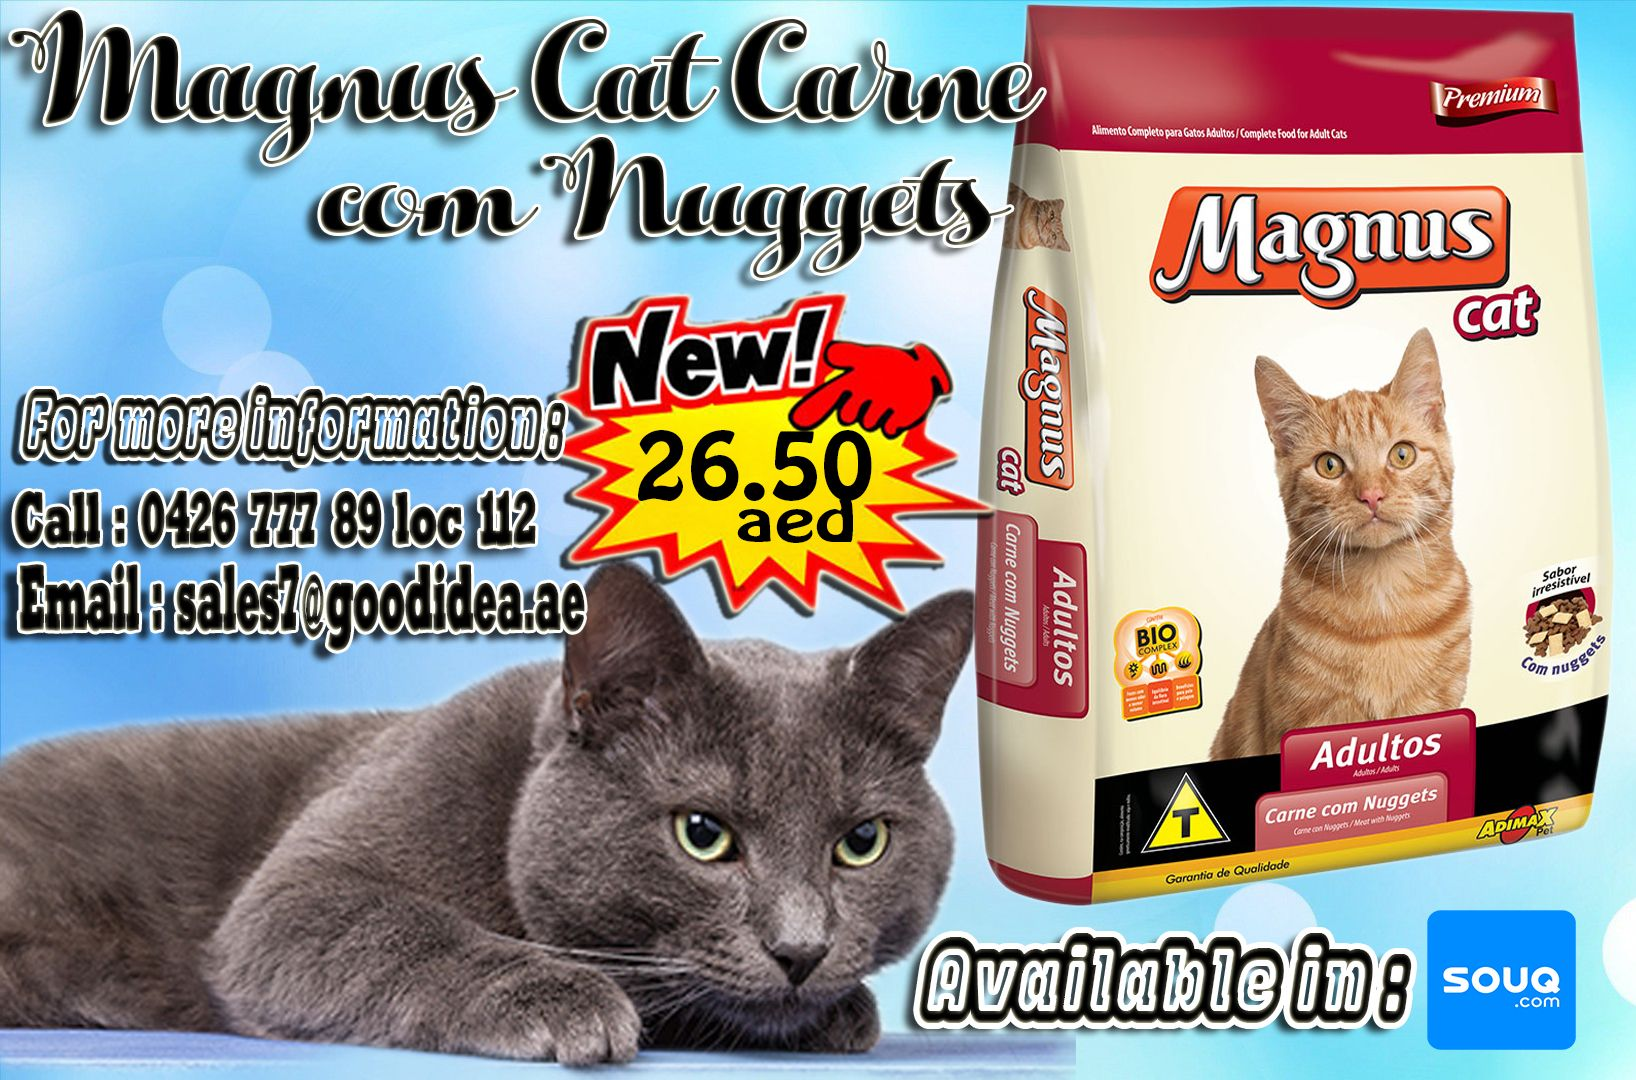 Magnus Cat Carne With Nuggets Are Now Available In Good Idea Pet Shop You Can Now Also Order In Souq Com For Affordable Pric Pet Shop Pet Store Pets